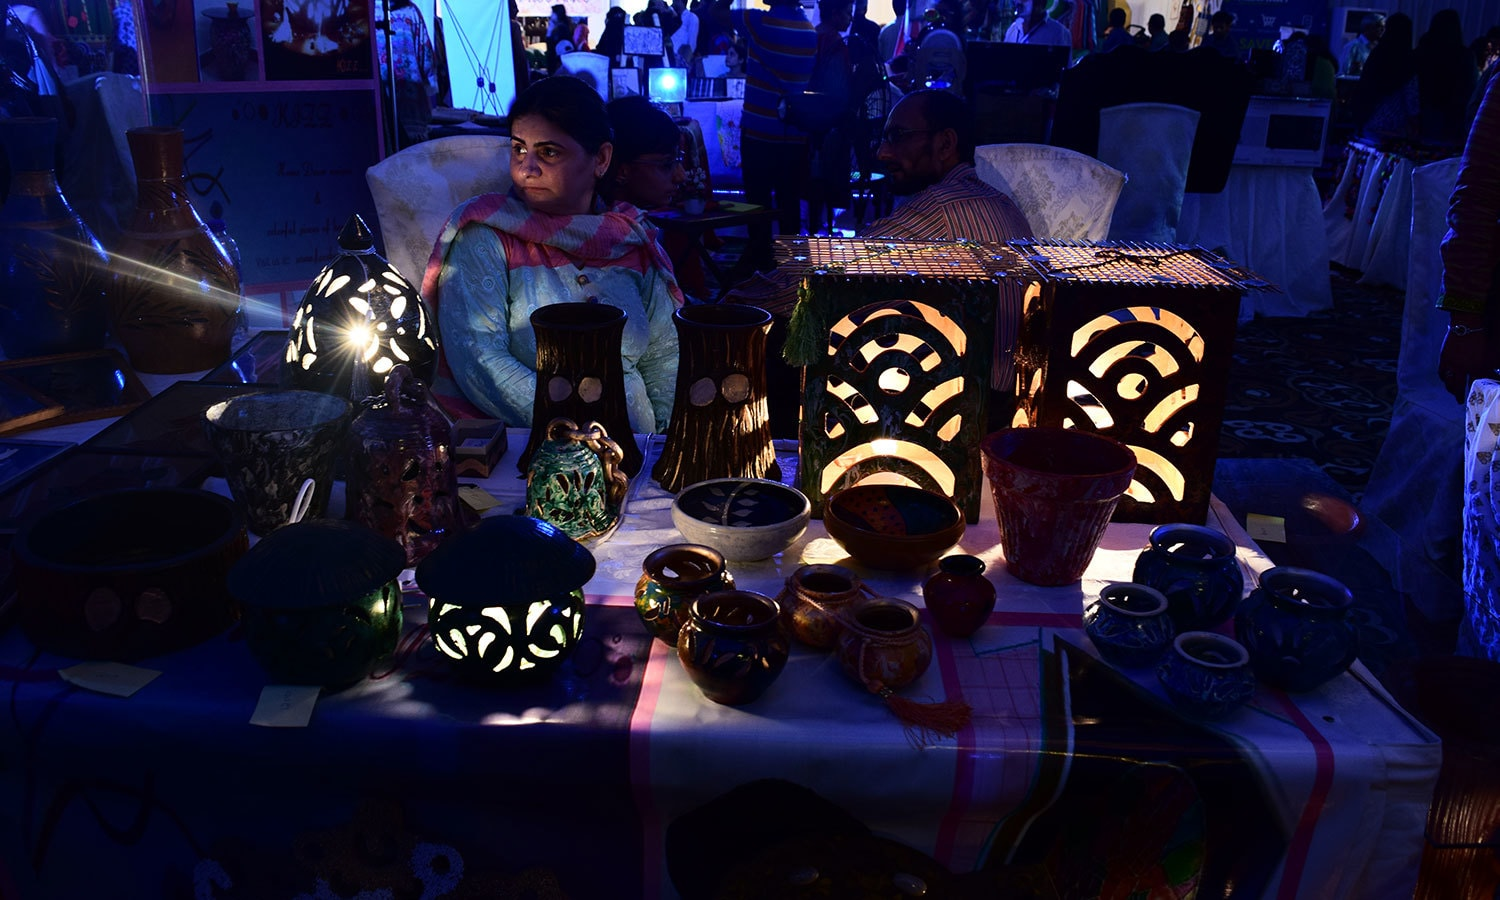 Carved lamps bring a glow in the dark light. — Photo by Zoya Anwer